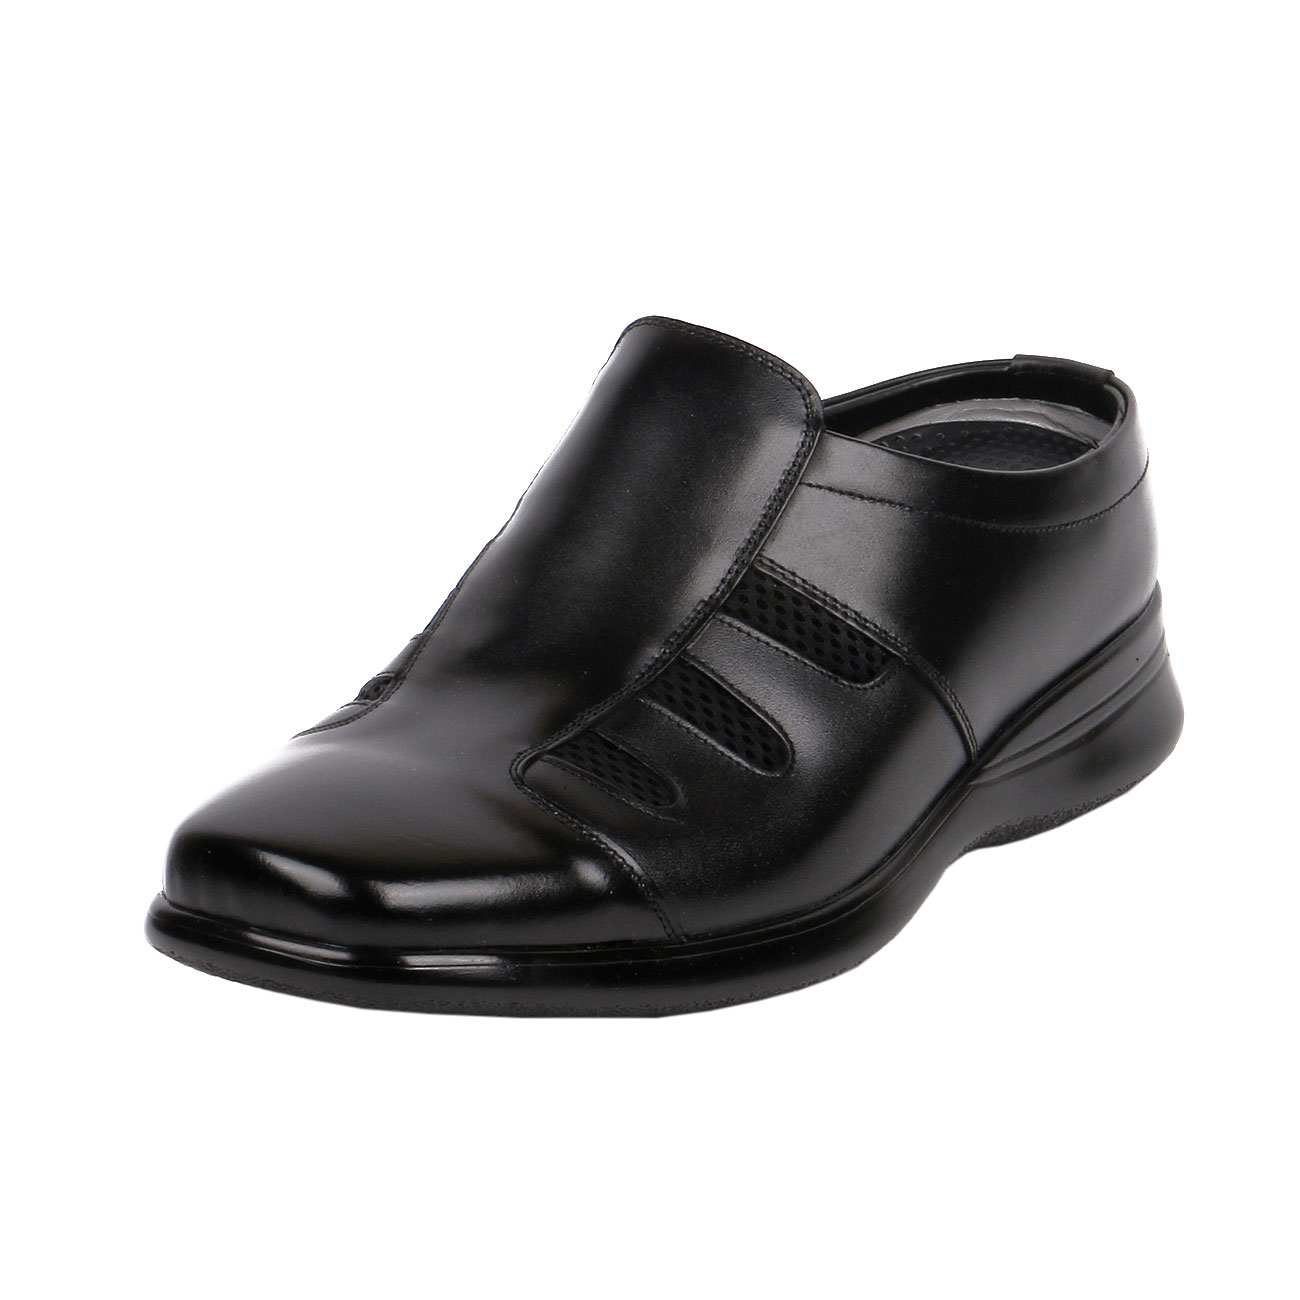 KL5112, Men's Comfy Office Elevator Slipper Business & House for suit to Make Taller 3